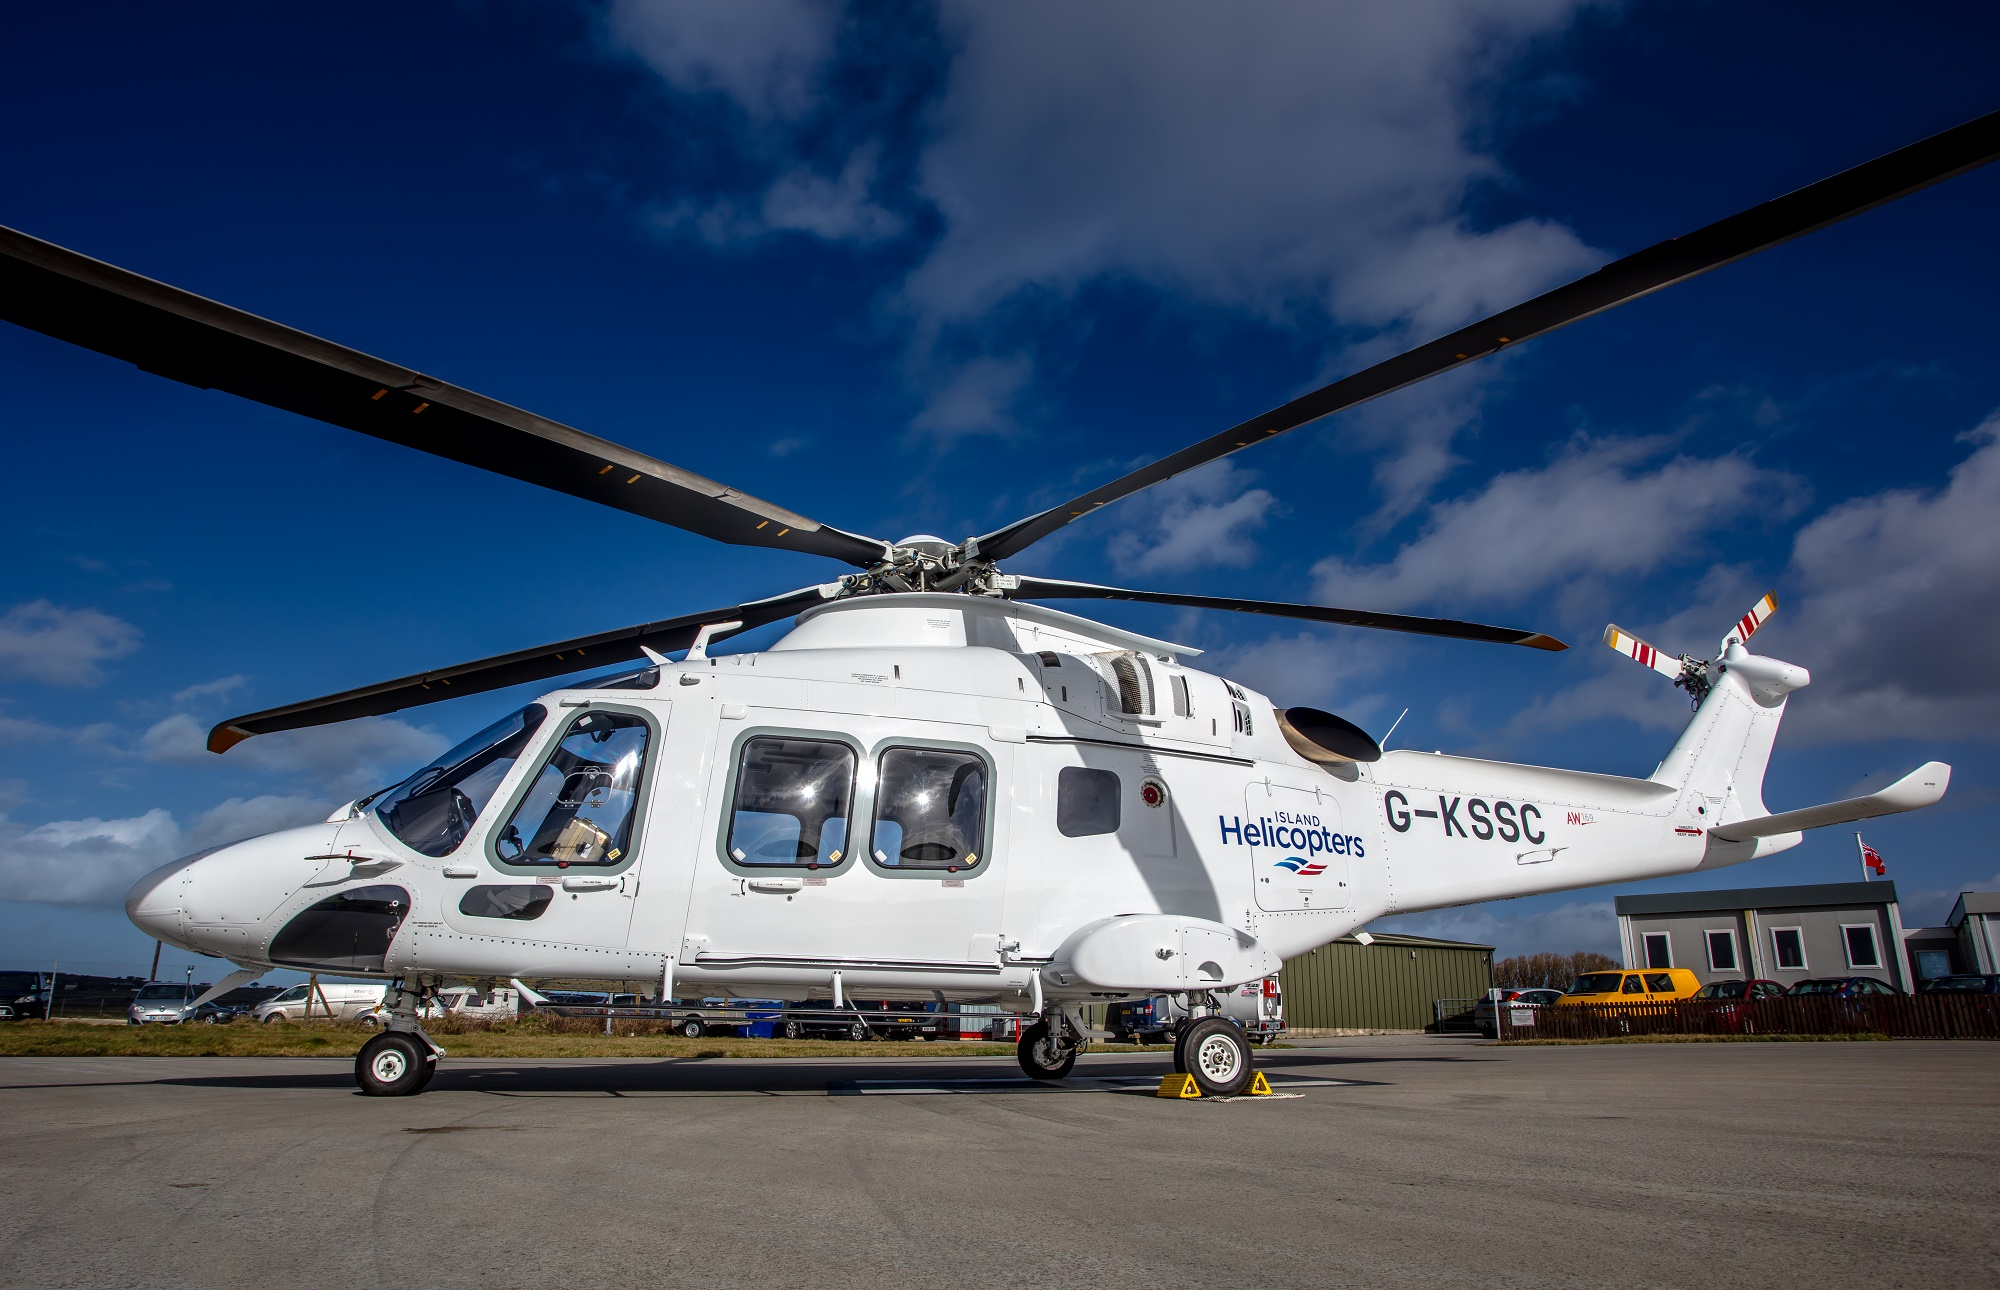 Island Helicopters 10-seater AW169 aircraft at Land's End Airport.